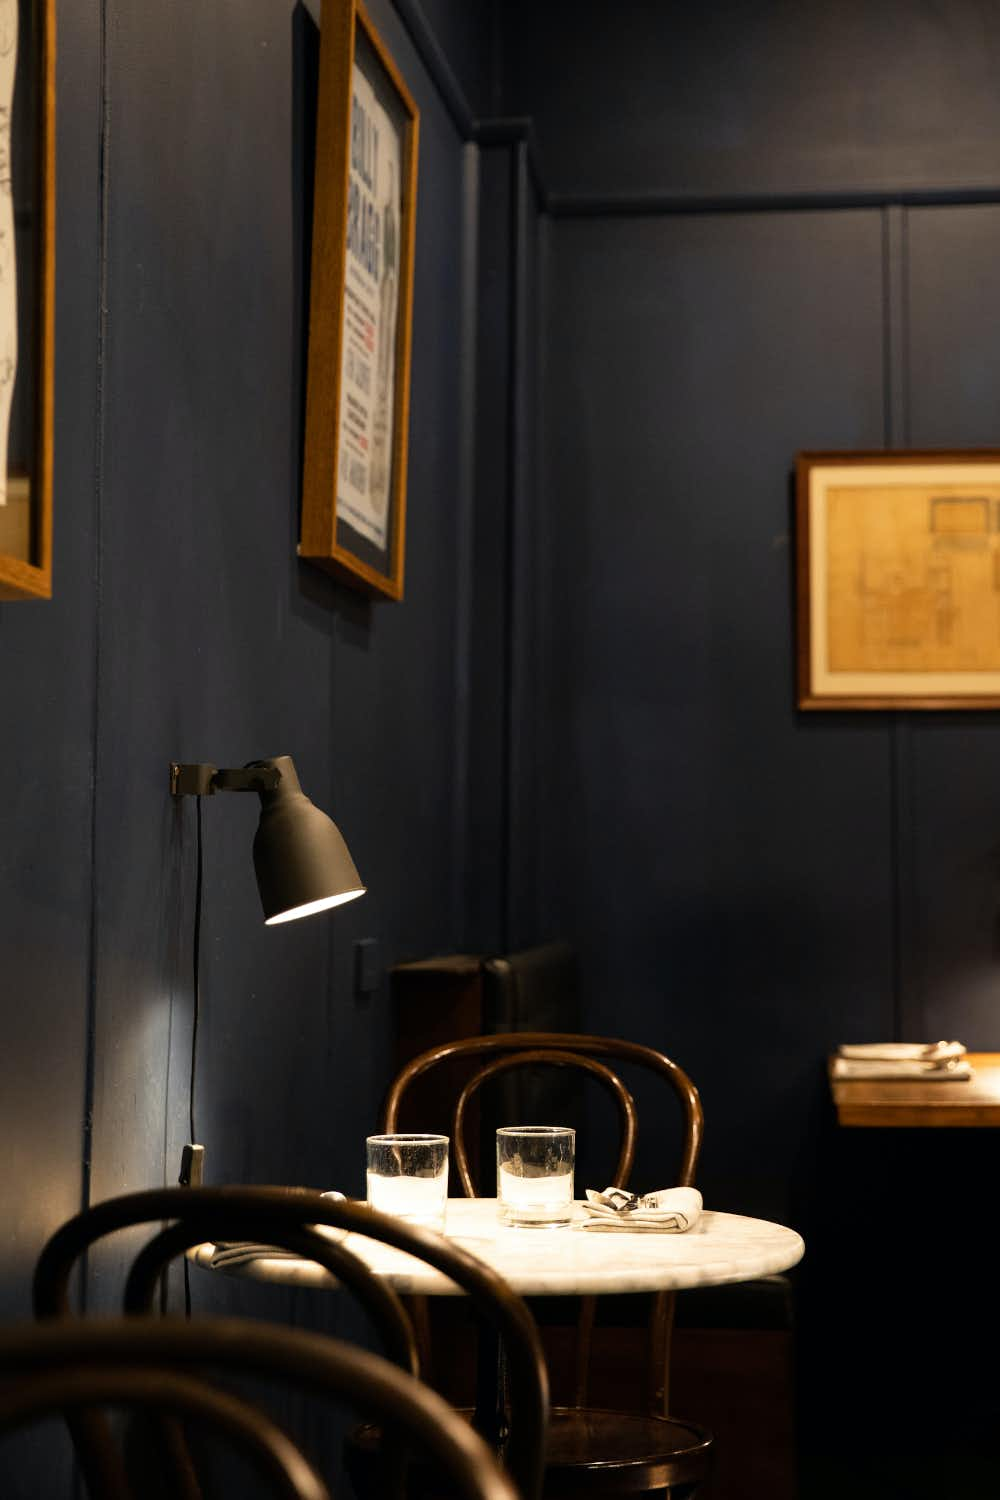 Lola Restaurant at the Theatre Royal Castlemaine